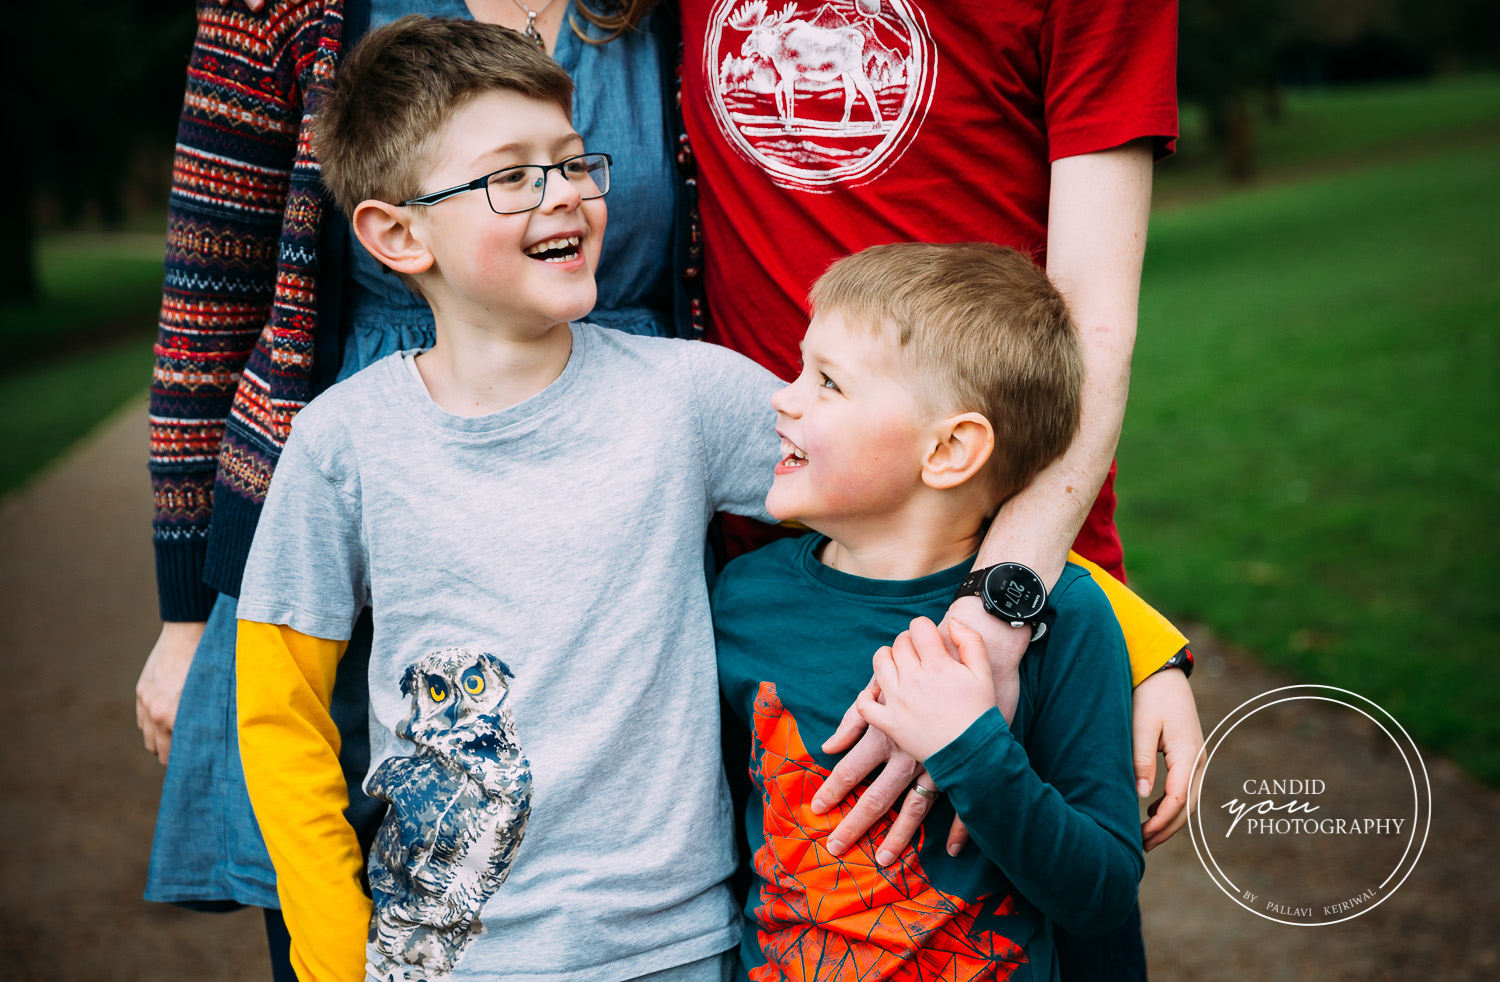 Harborne sibling boys brothers enjoying laughing giggling autistic